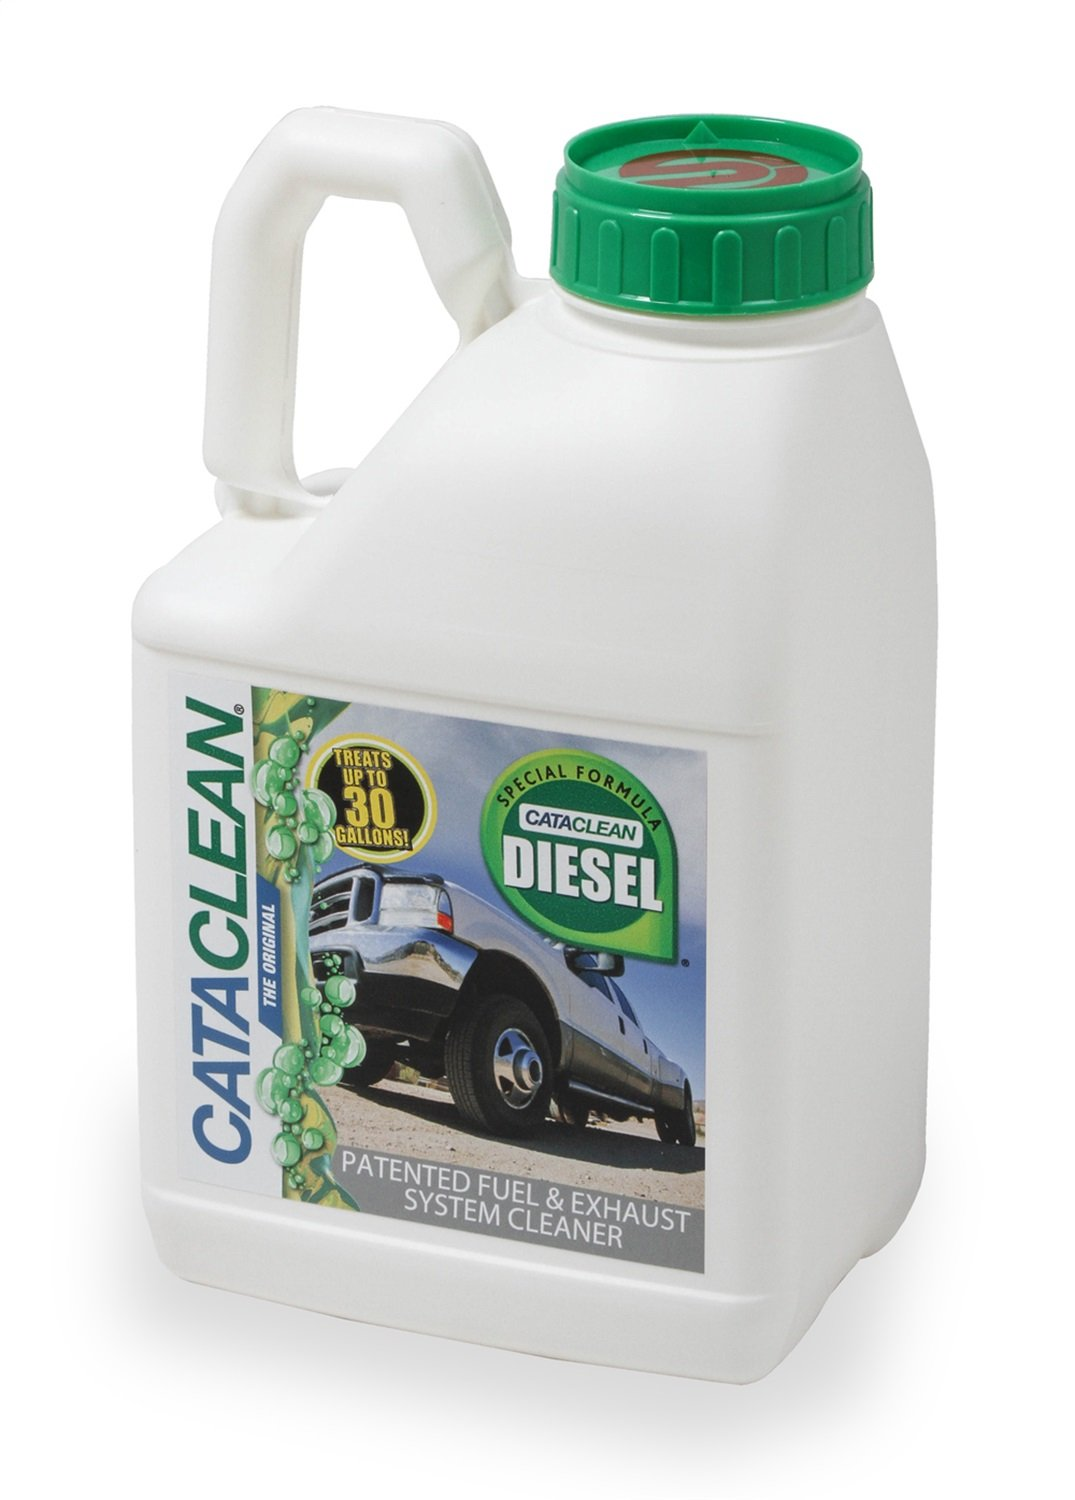 Cataclean 120018D Cataclean Fuel And Exhaust System Cleaner Special Formula For Use w/Diesel Engines 3 Liters Cataclean Fuel And Exhaust System Cleaner